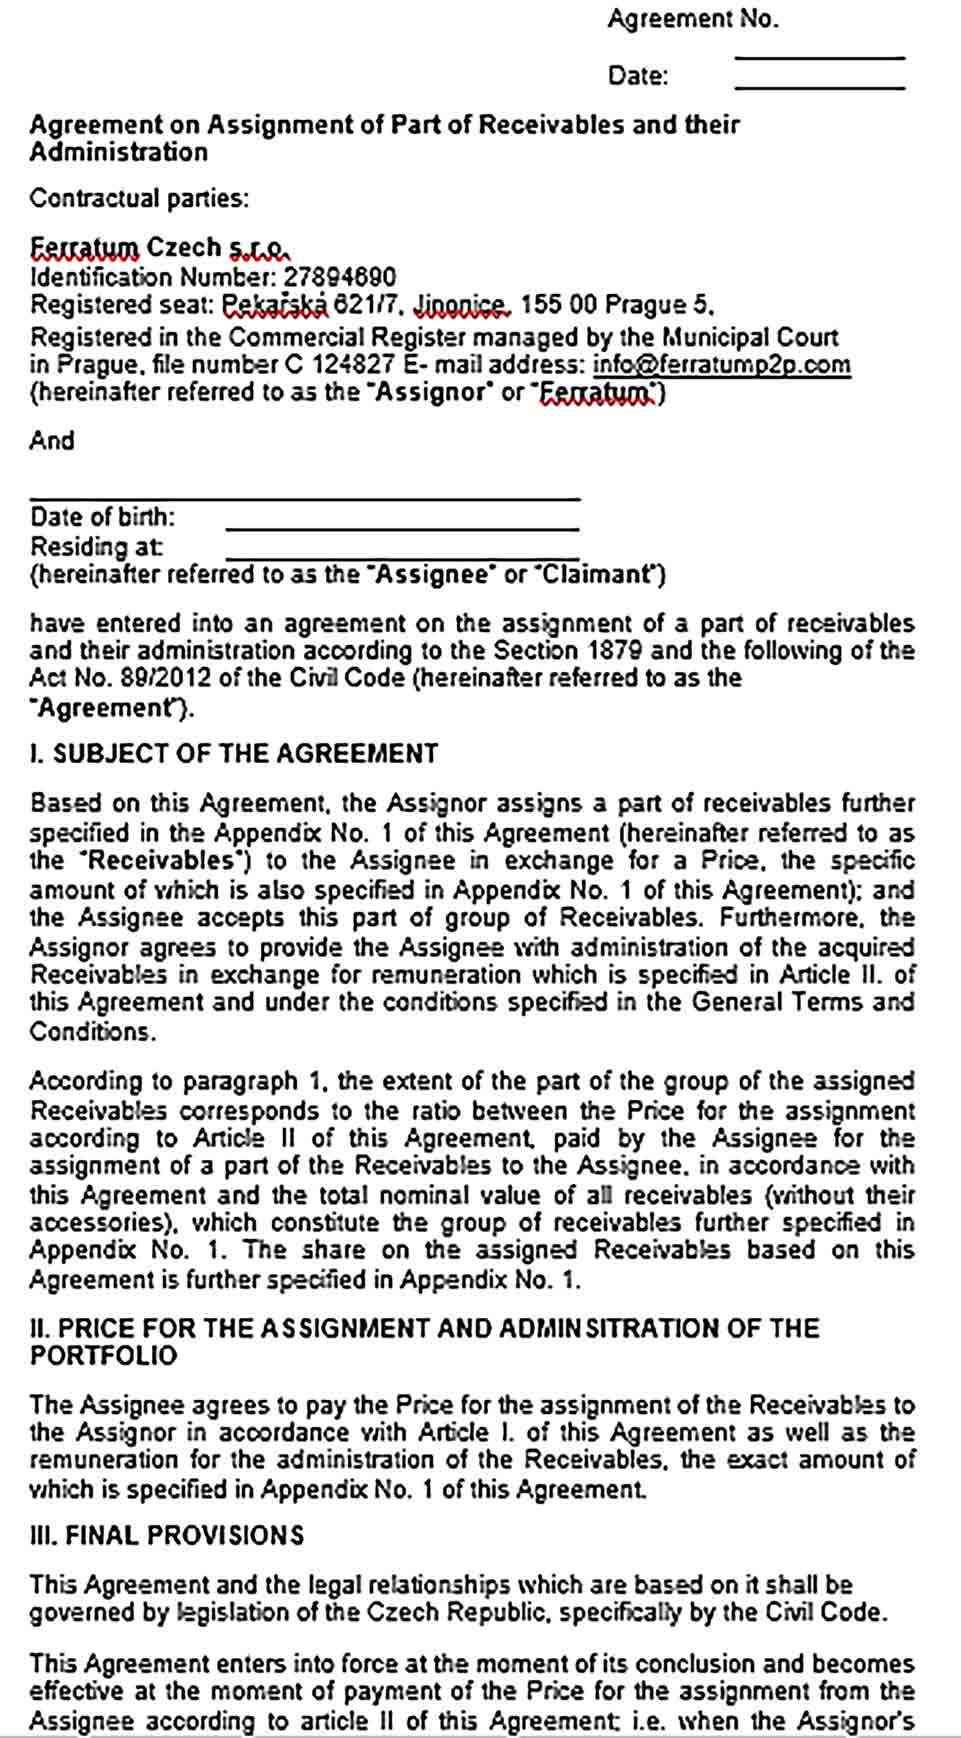 Sample Assignment of Receivables Agreement